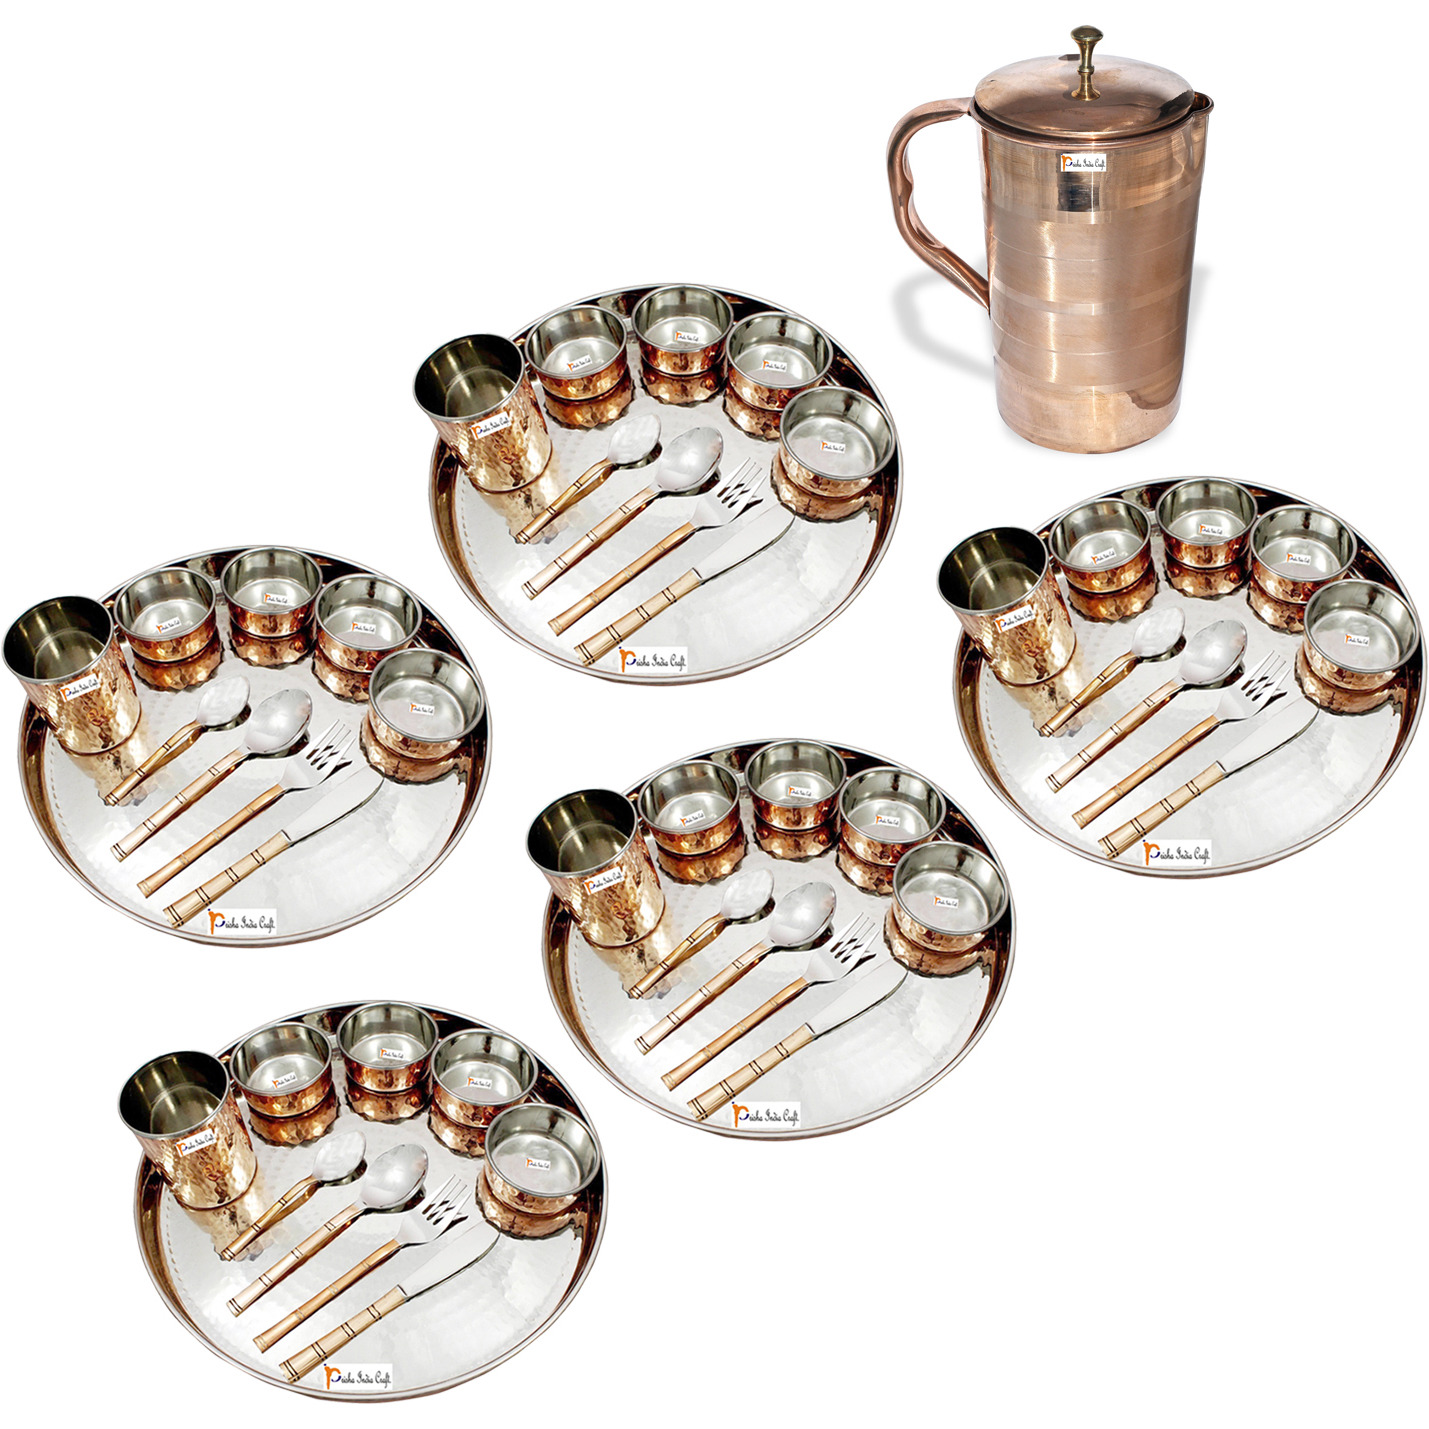 Prisha India Craft B. Set of 5 Dinnerware Traditional Stainless Steel Copper Dinner Set of Thali Plate, Bowls, Glass and Spoons, Dia 13  With 1 Luxury Style Pure Copper Pitcher Jug - Christmas Gift